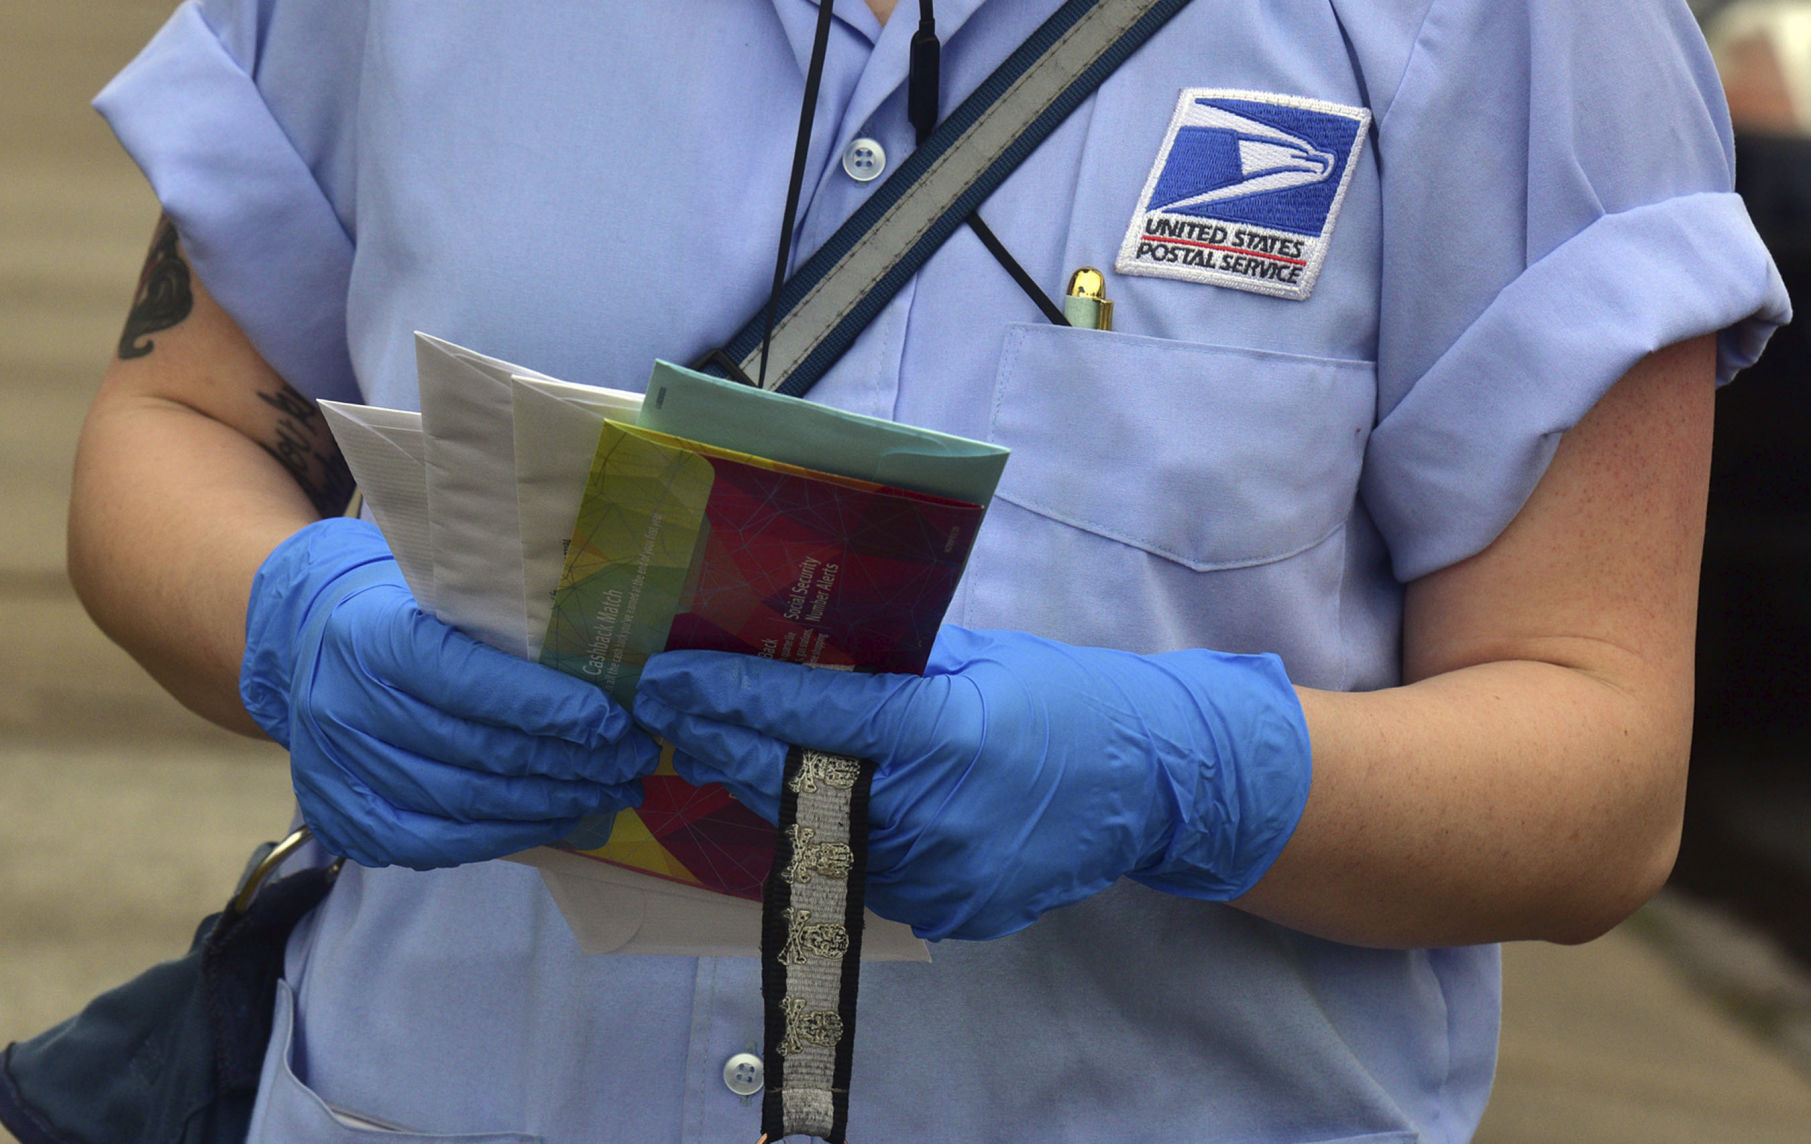 Handling Mail Amid Coronavirus Low Risk But Wash Your Hands The